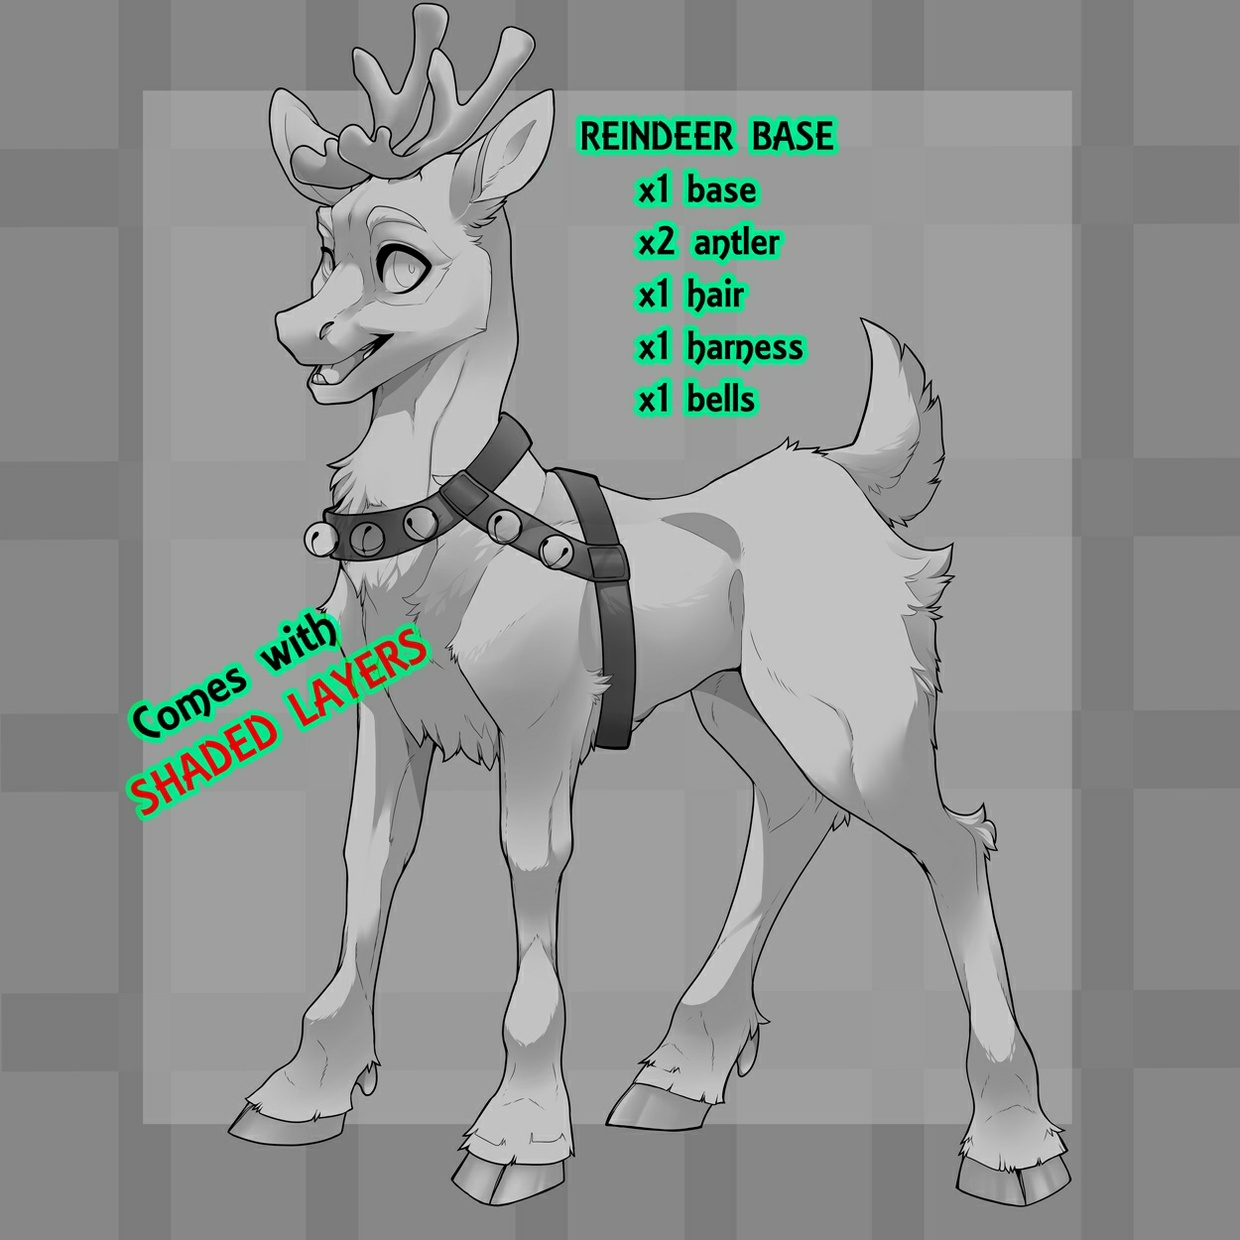 Reindeer/Deer/Goat Base w/ Shaded Layers